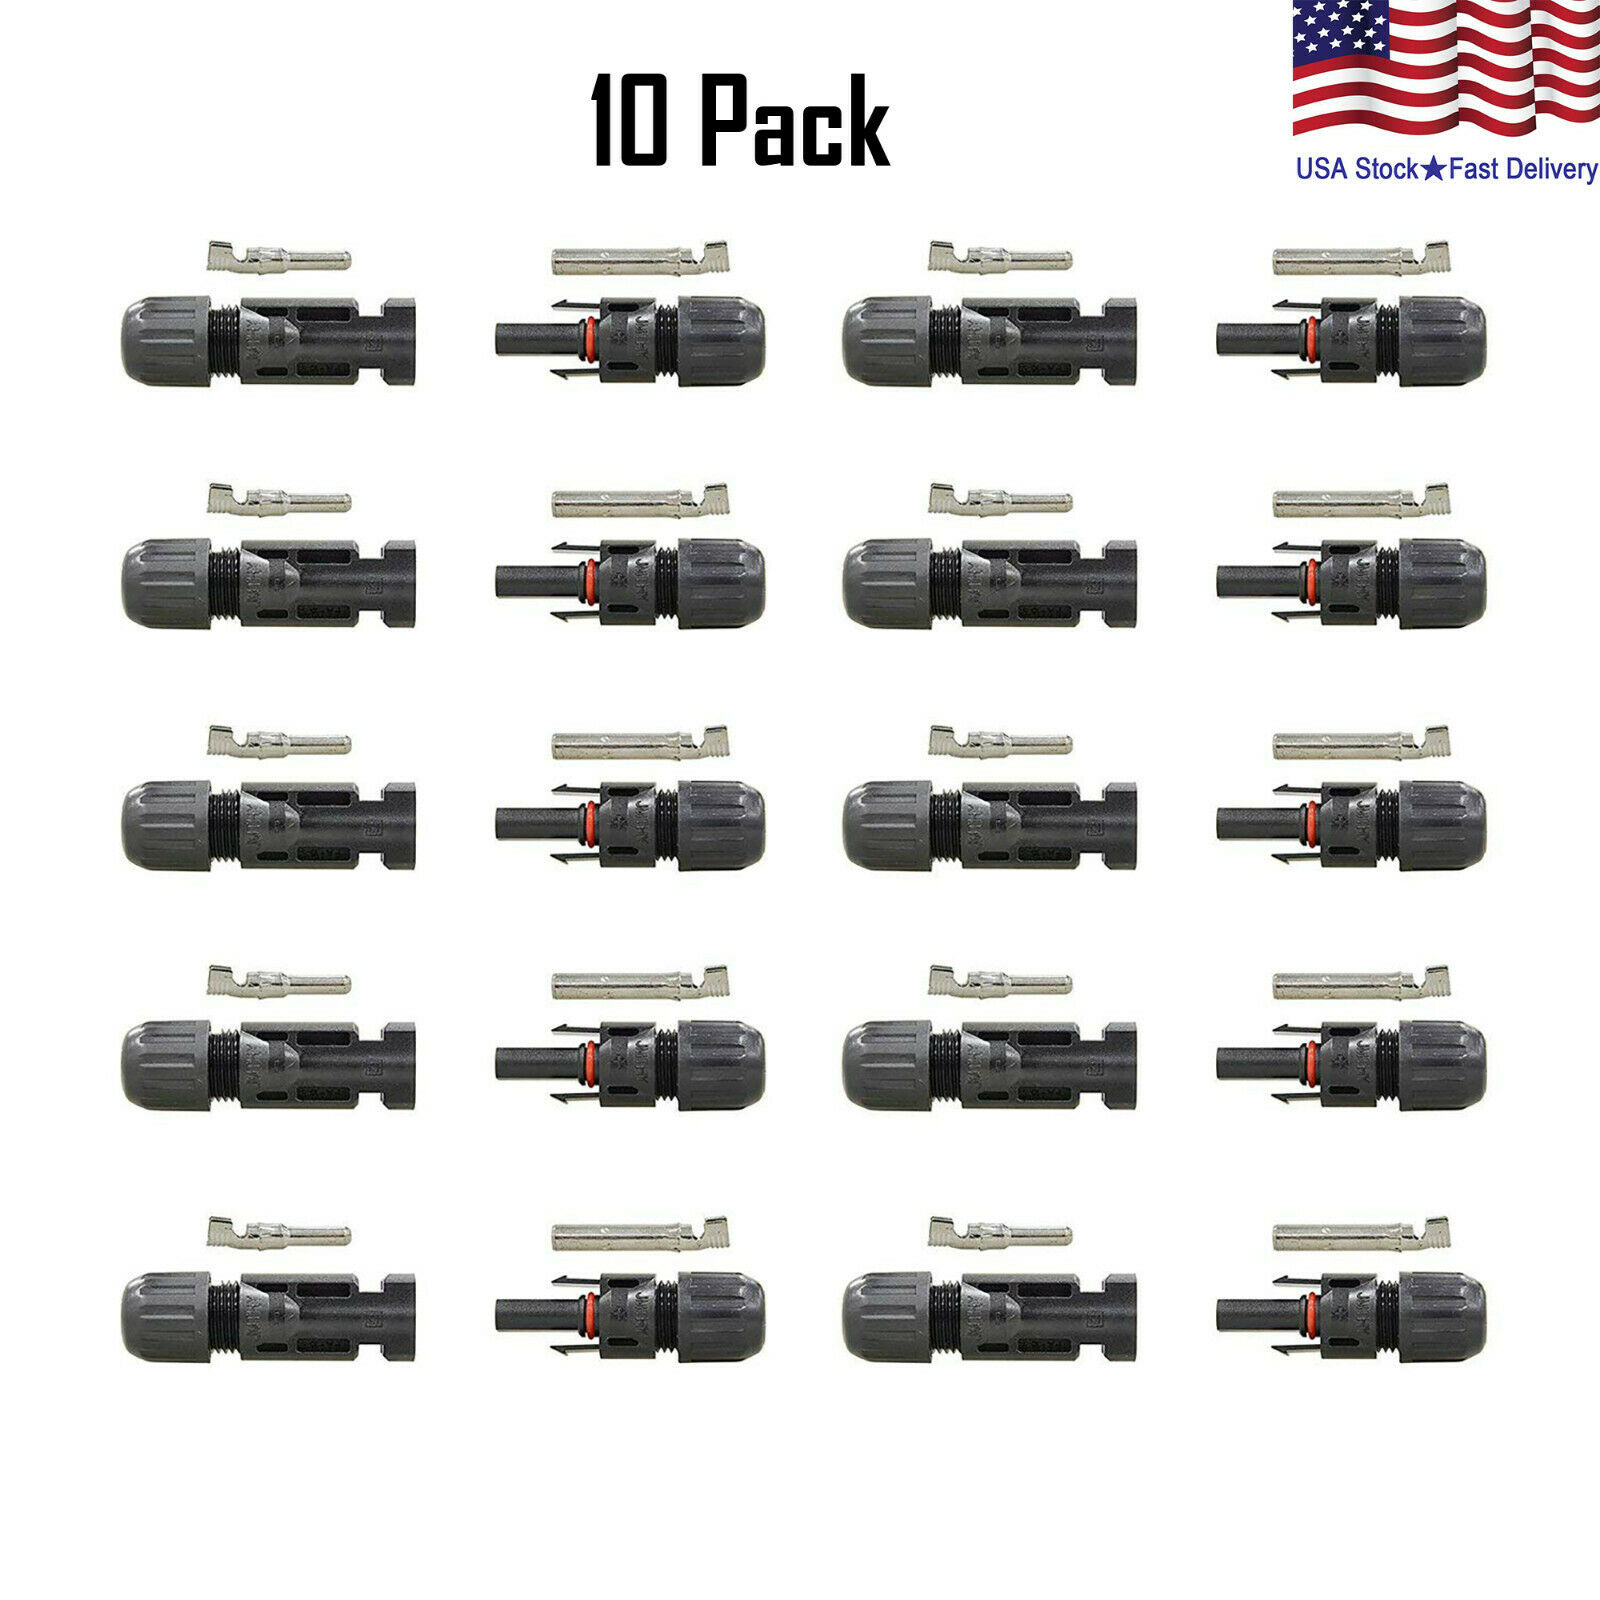 10 Pairs 30A Male Female Wire PV Solar Panel Cable Connector Set Waterproof Electrical Supplies